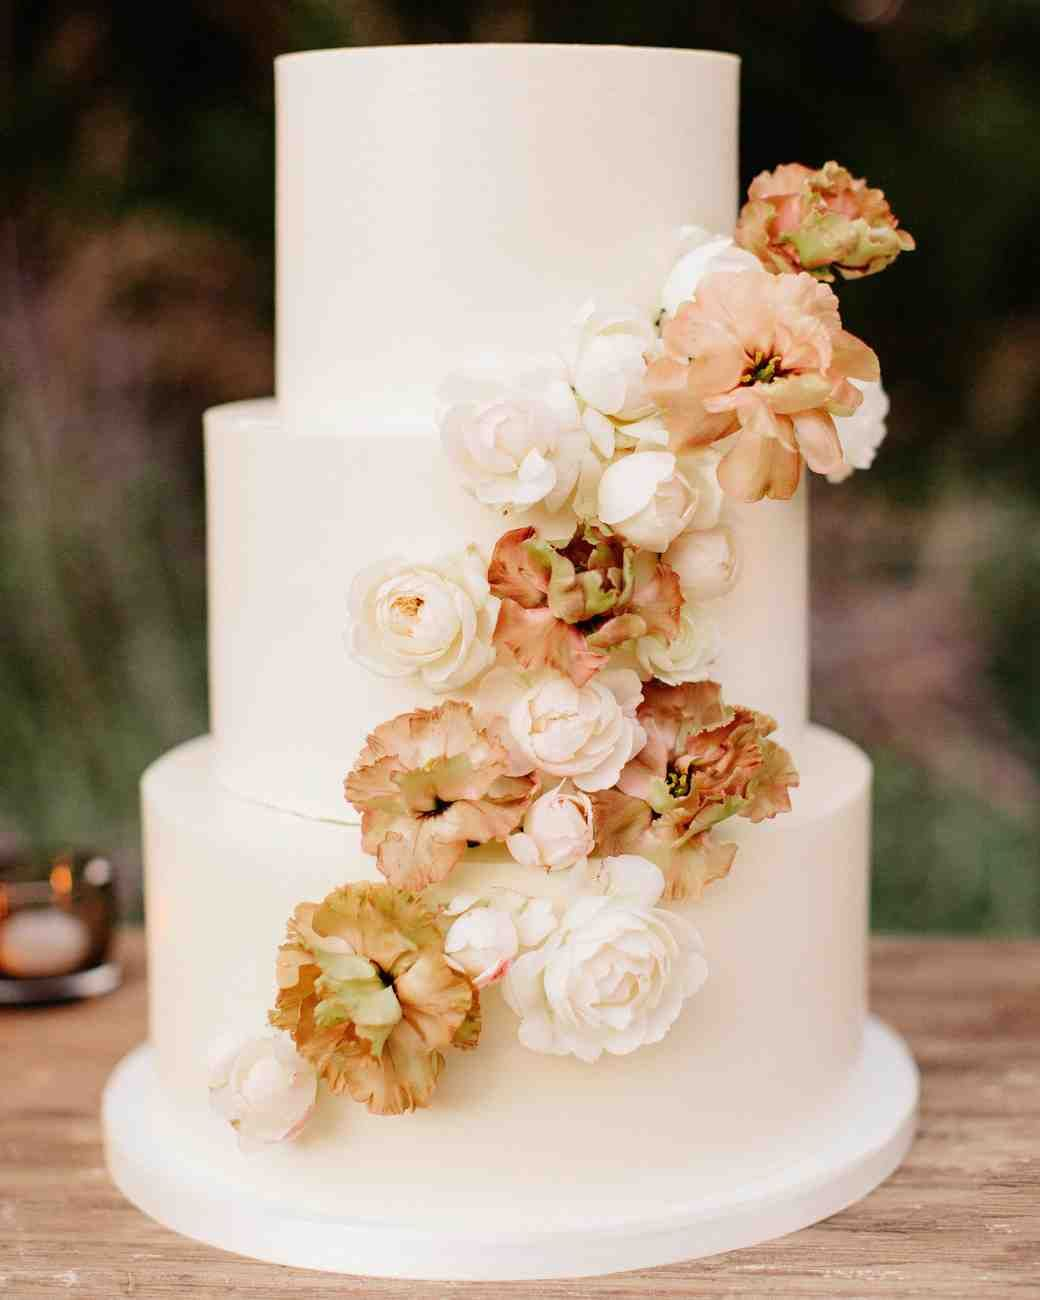 49 Fall Wedding Cakes We Re Obsessed With Simple Wedding Cake Wedding Cake Pictures Fall Wedding Cakes